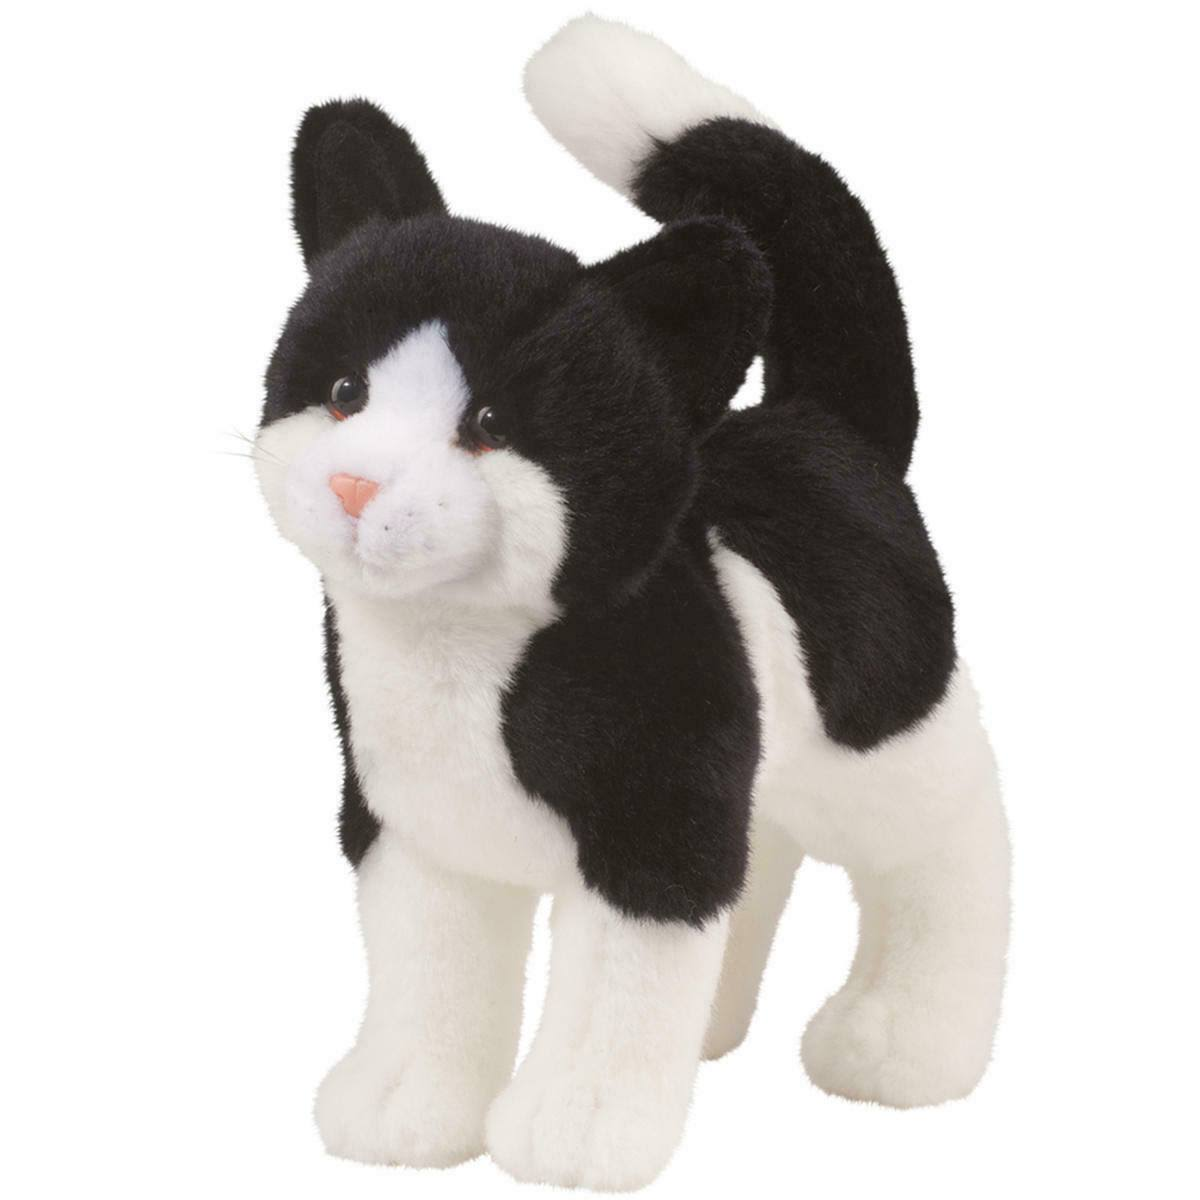 Douglas Cuddle Toy Scooter The Black & White Cat Plush